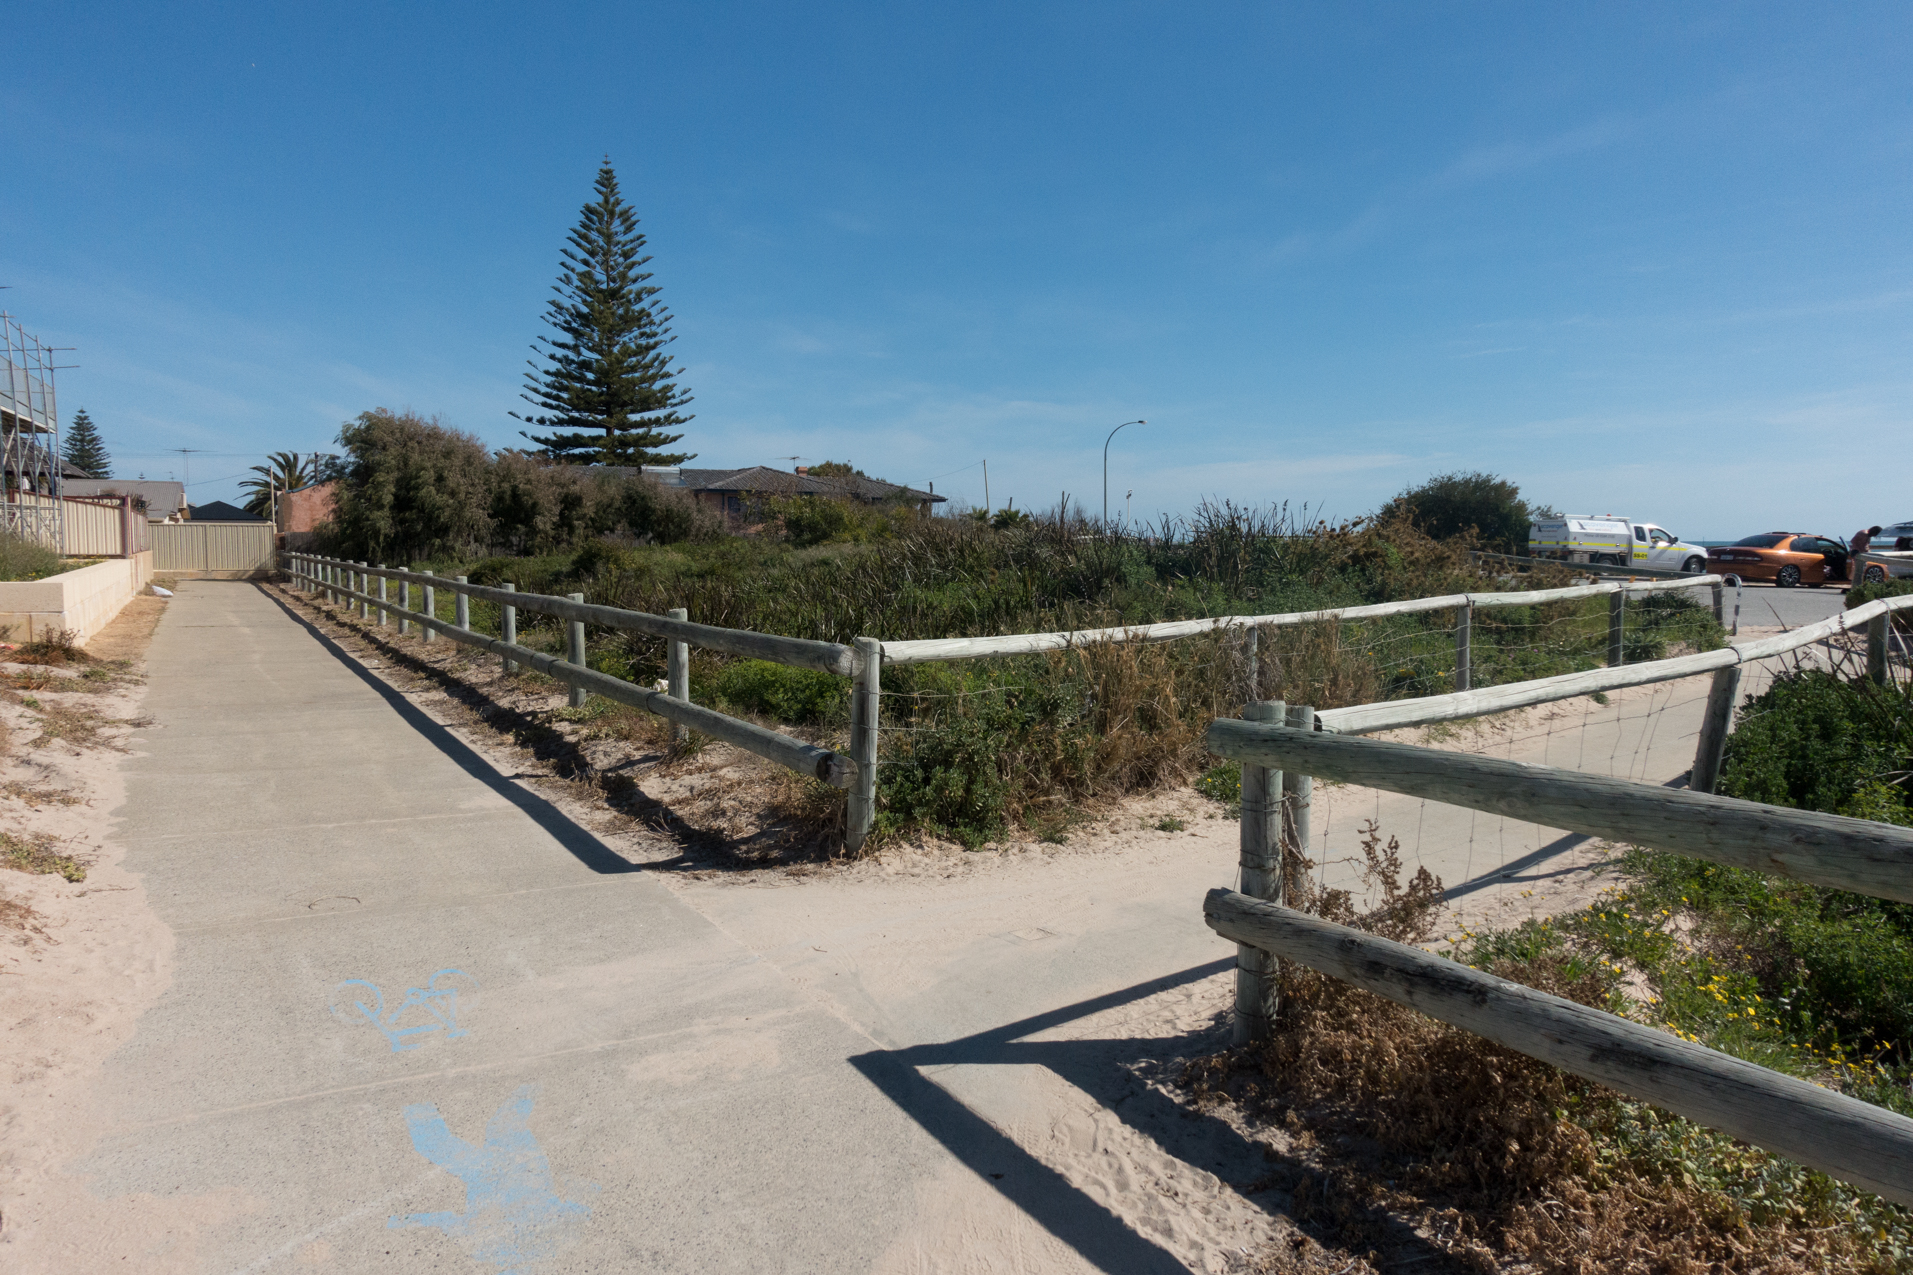 Plate 10: Path into the small carpark near the end of the walk